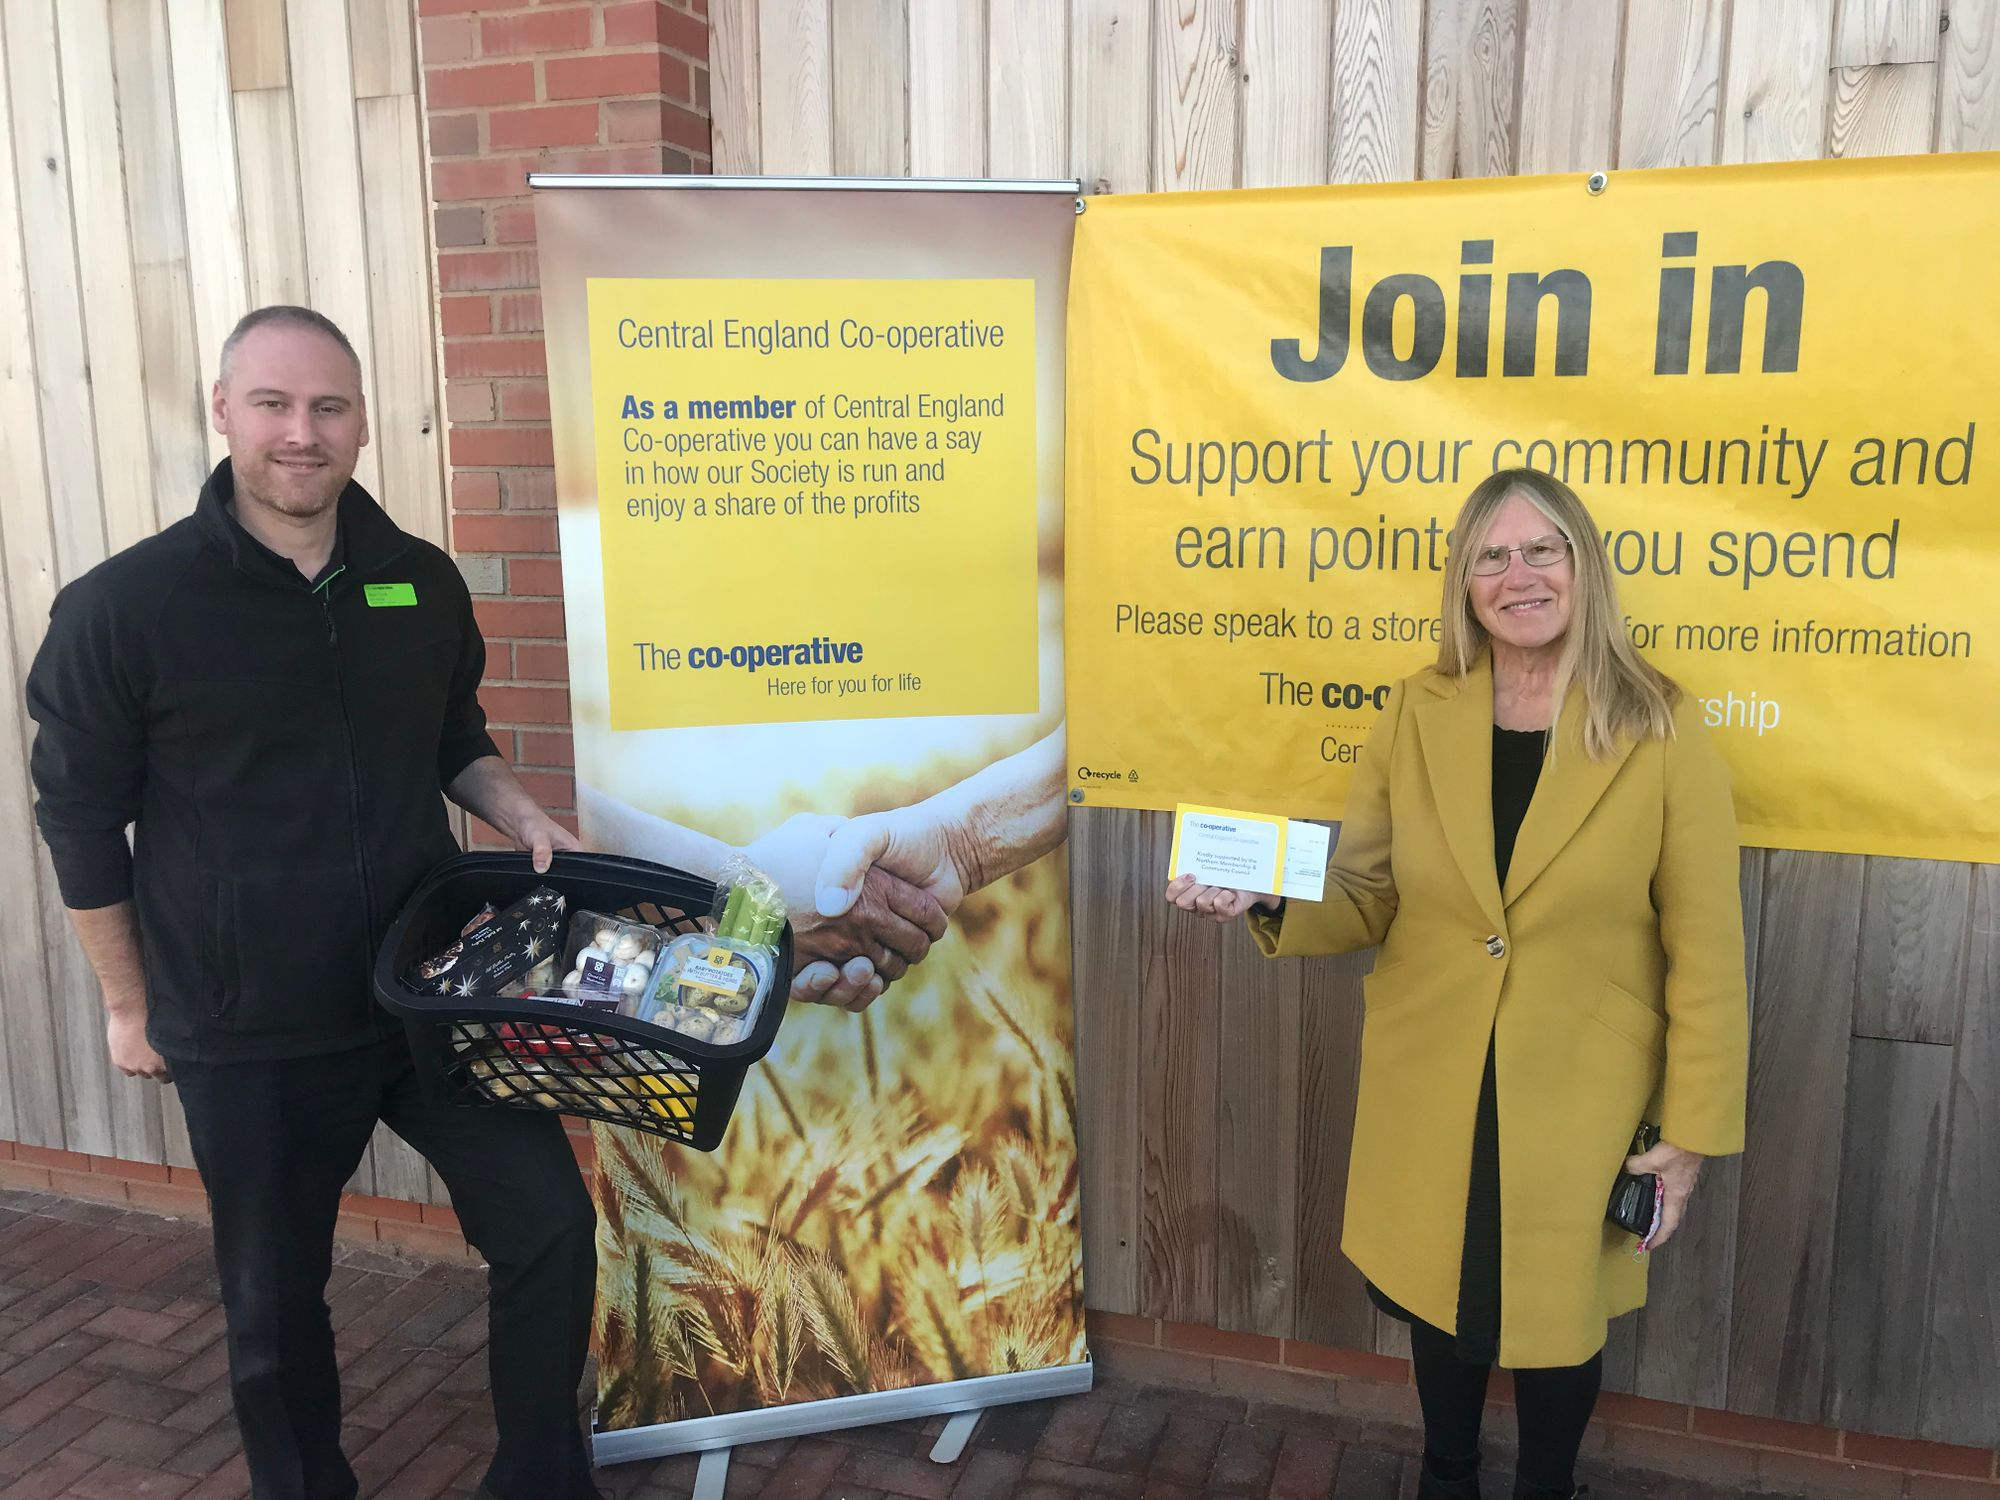 Supporting meals for local people